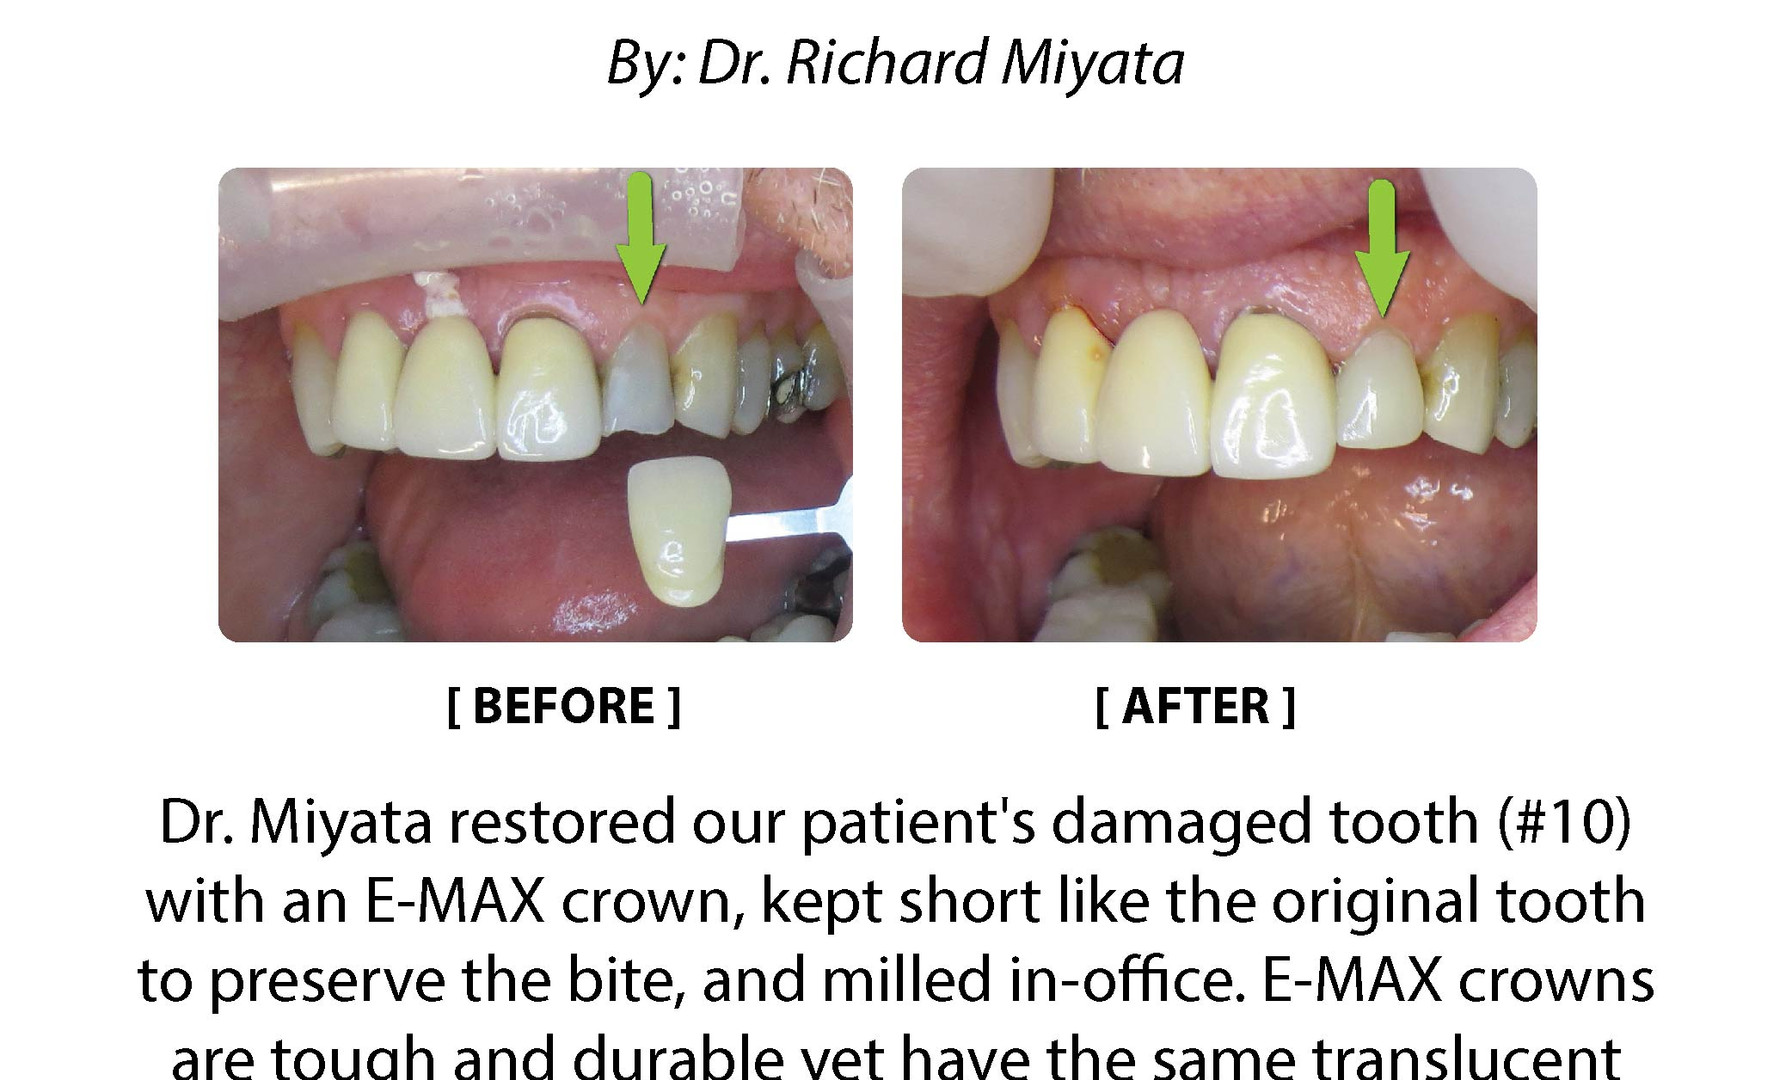 Case Study: E-MAX Crown Milled in-office (Tooth 10)